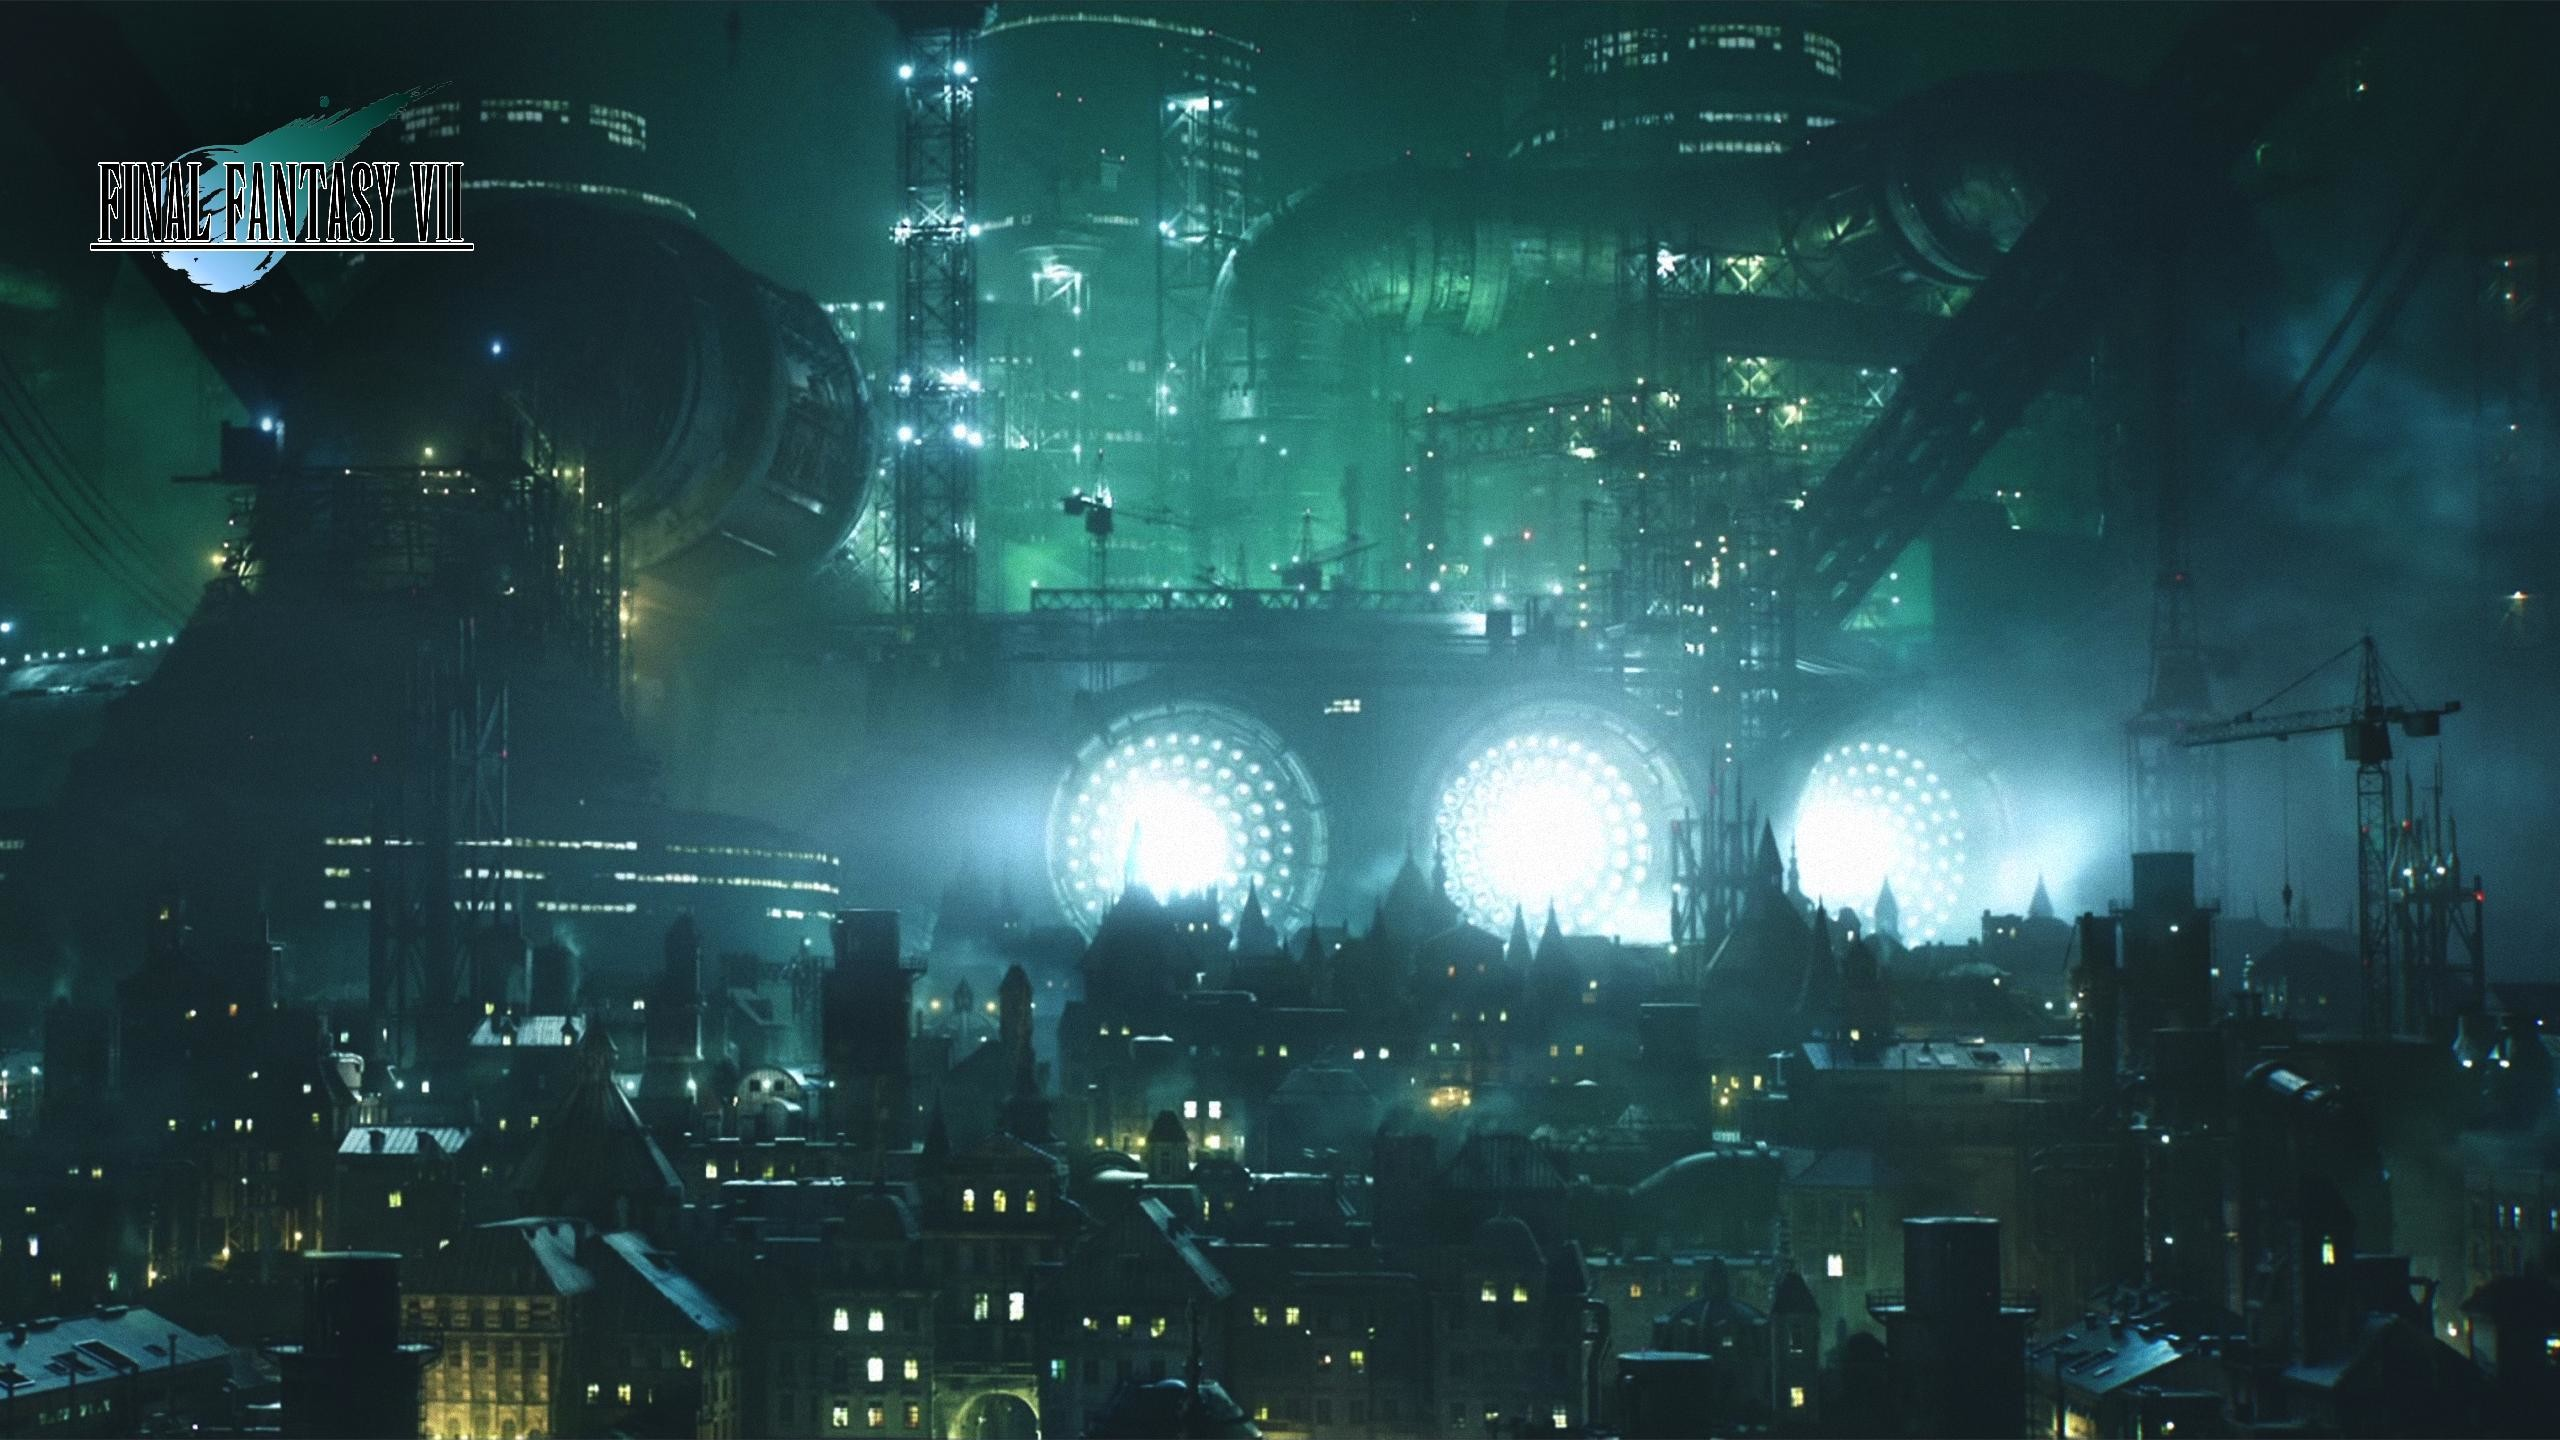 Final fantasy vii remake wallpaper 89 images 1920x1080 final fantasy vii remake wallpaper download 2560x1440 ffvii remake midgar wallpaper altavistaventures Gallery